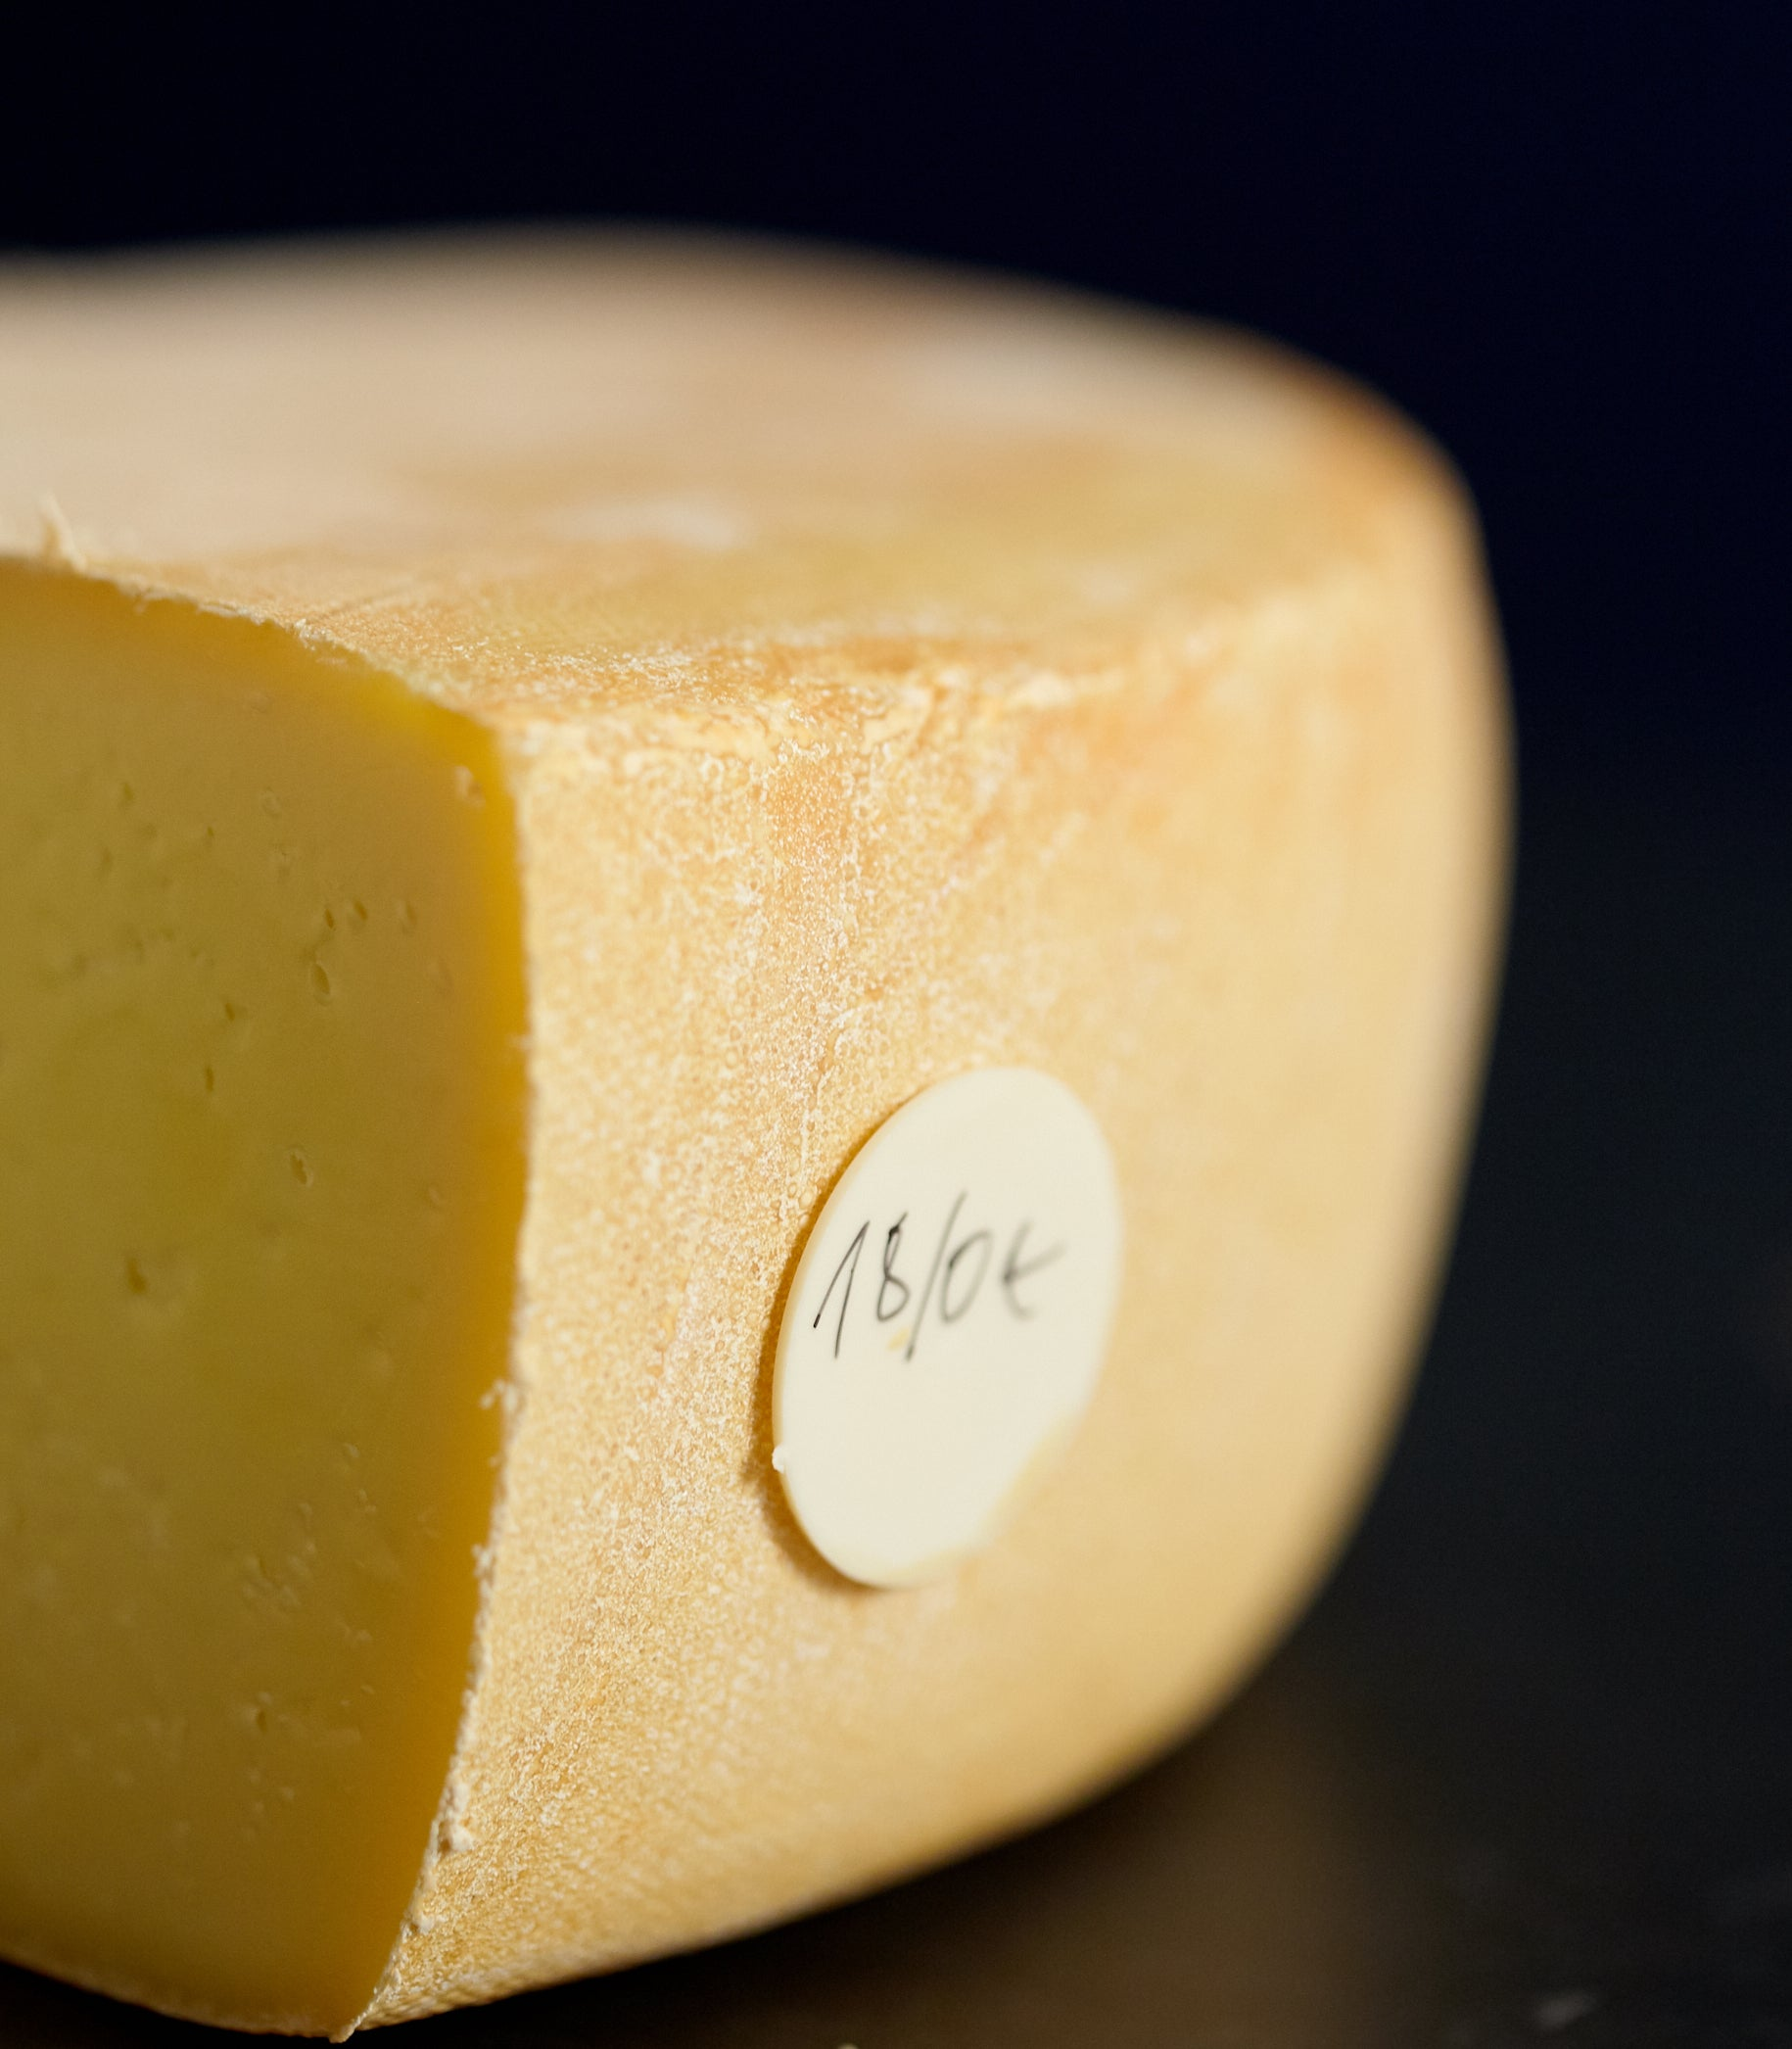 Close up of a cut piece of Raclette-style Ogleshield cheese, showing the firm paste, orange-pink rind and date tag